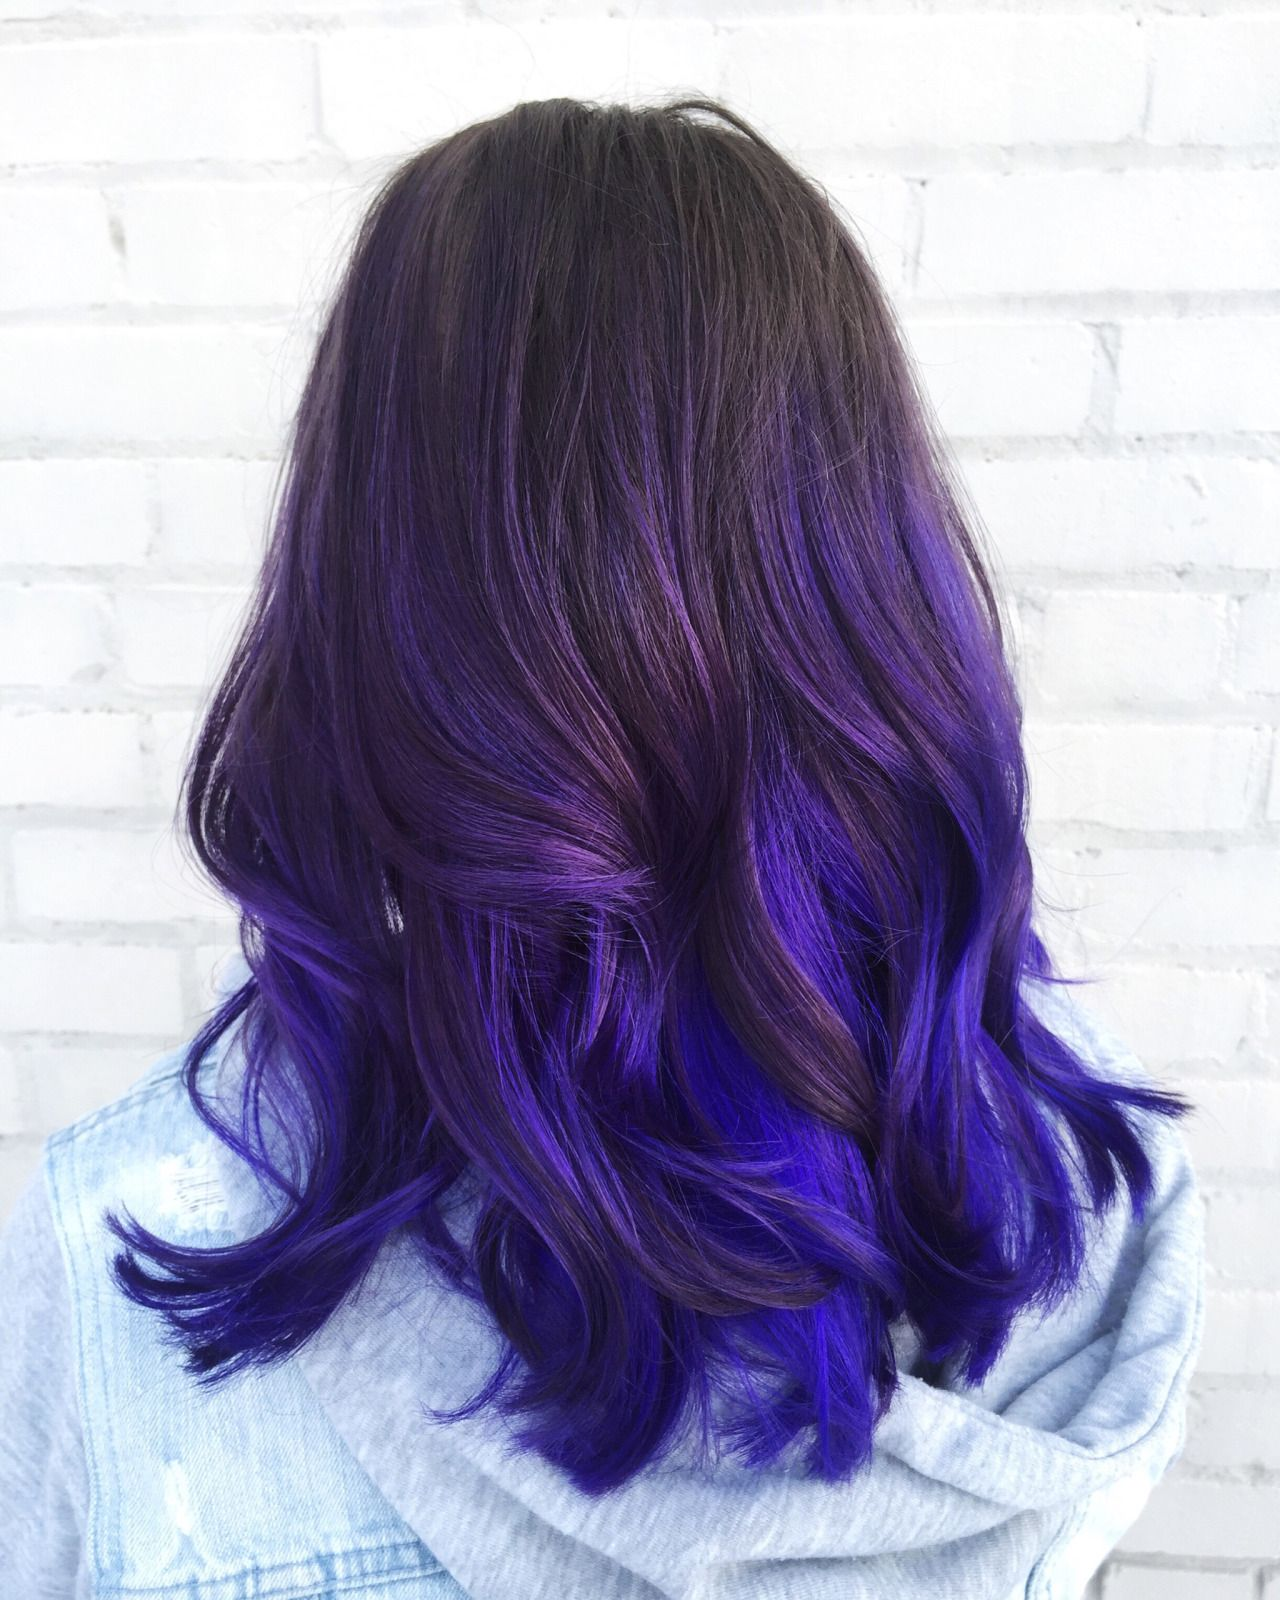 60 Trendy Ombre Hairstyles 2021 Brunette Blue Red Purple Blonde Hair Styles Hair Color Purple Ombre Hair